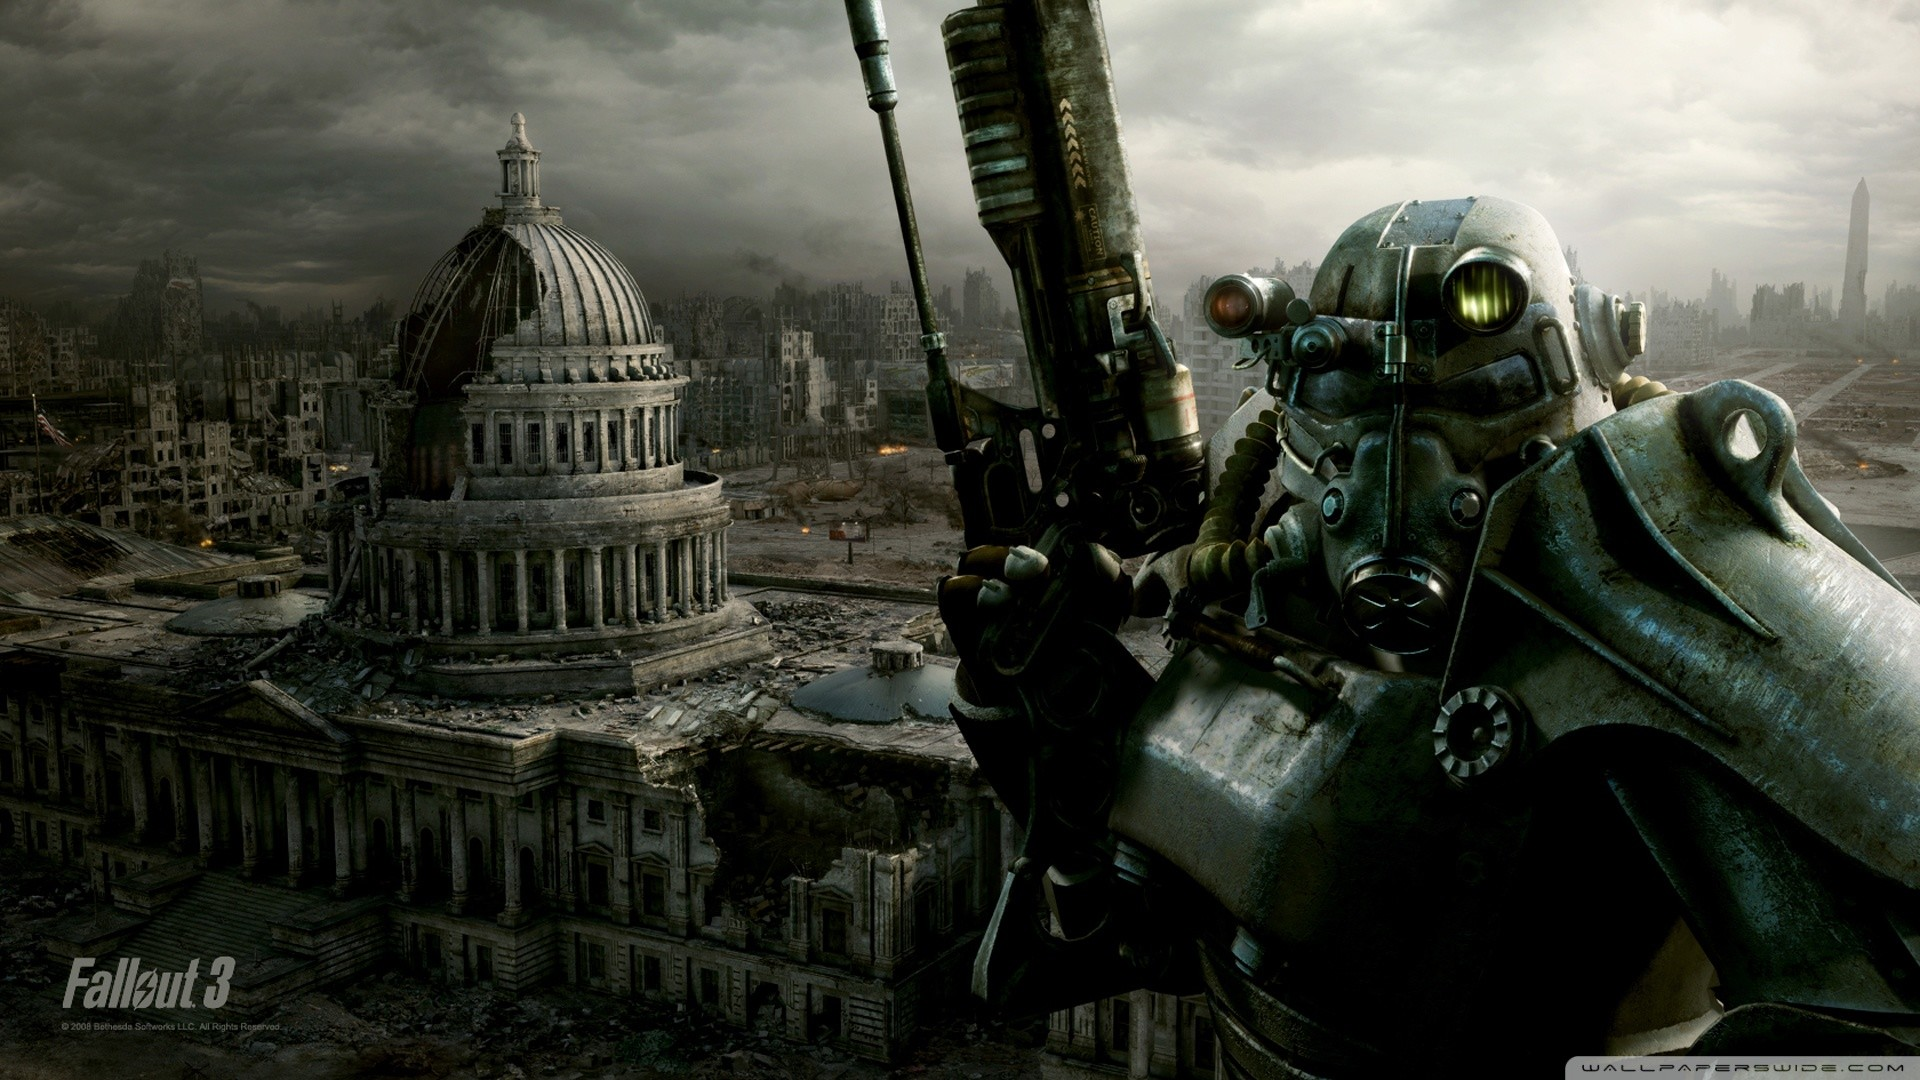 Res: 1920x1080, fallout_4-wallpaper--by-acer_9876-1